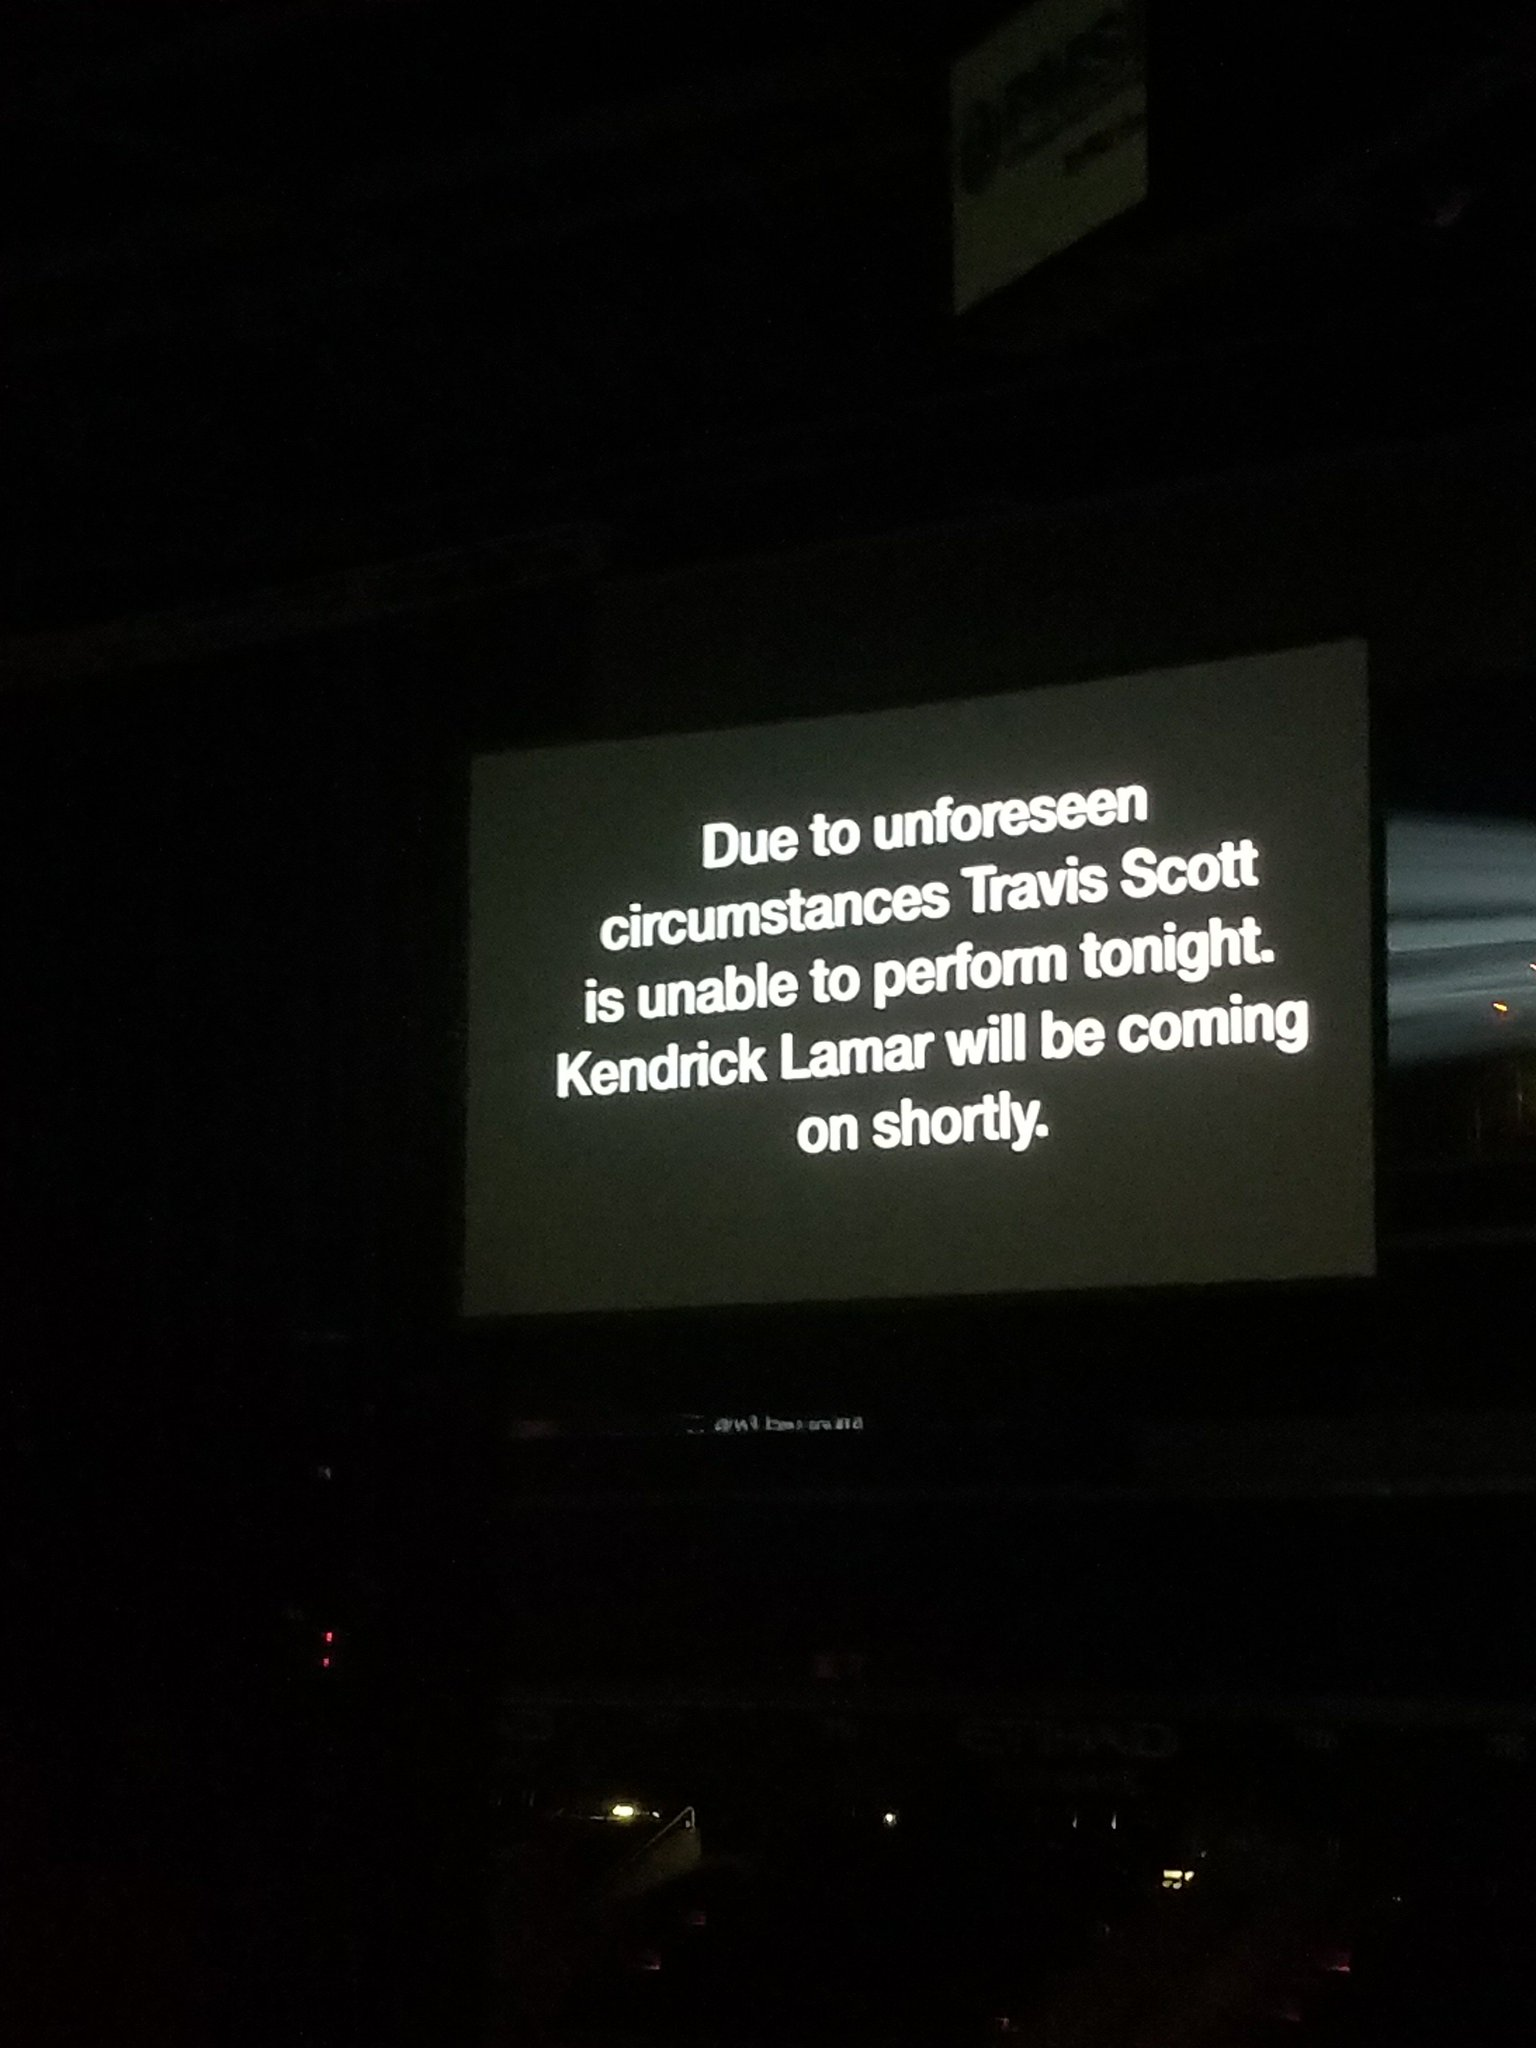 Thank goodness I wasn't pressed to see Travis Scott #damntour https://t.co/e8Z7LQsx9K